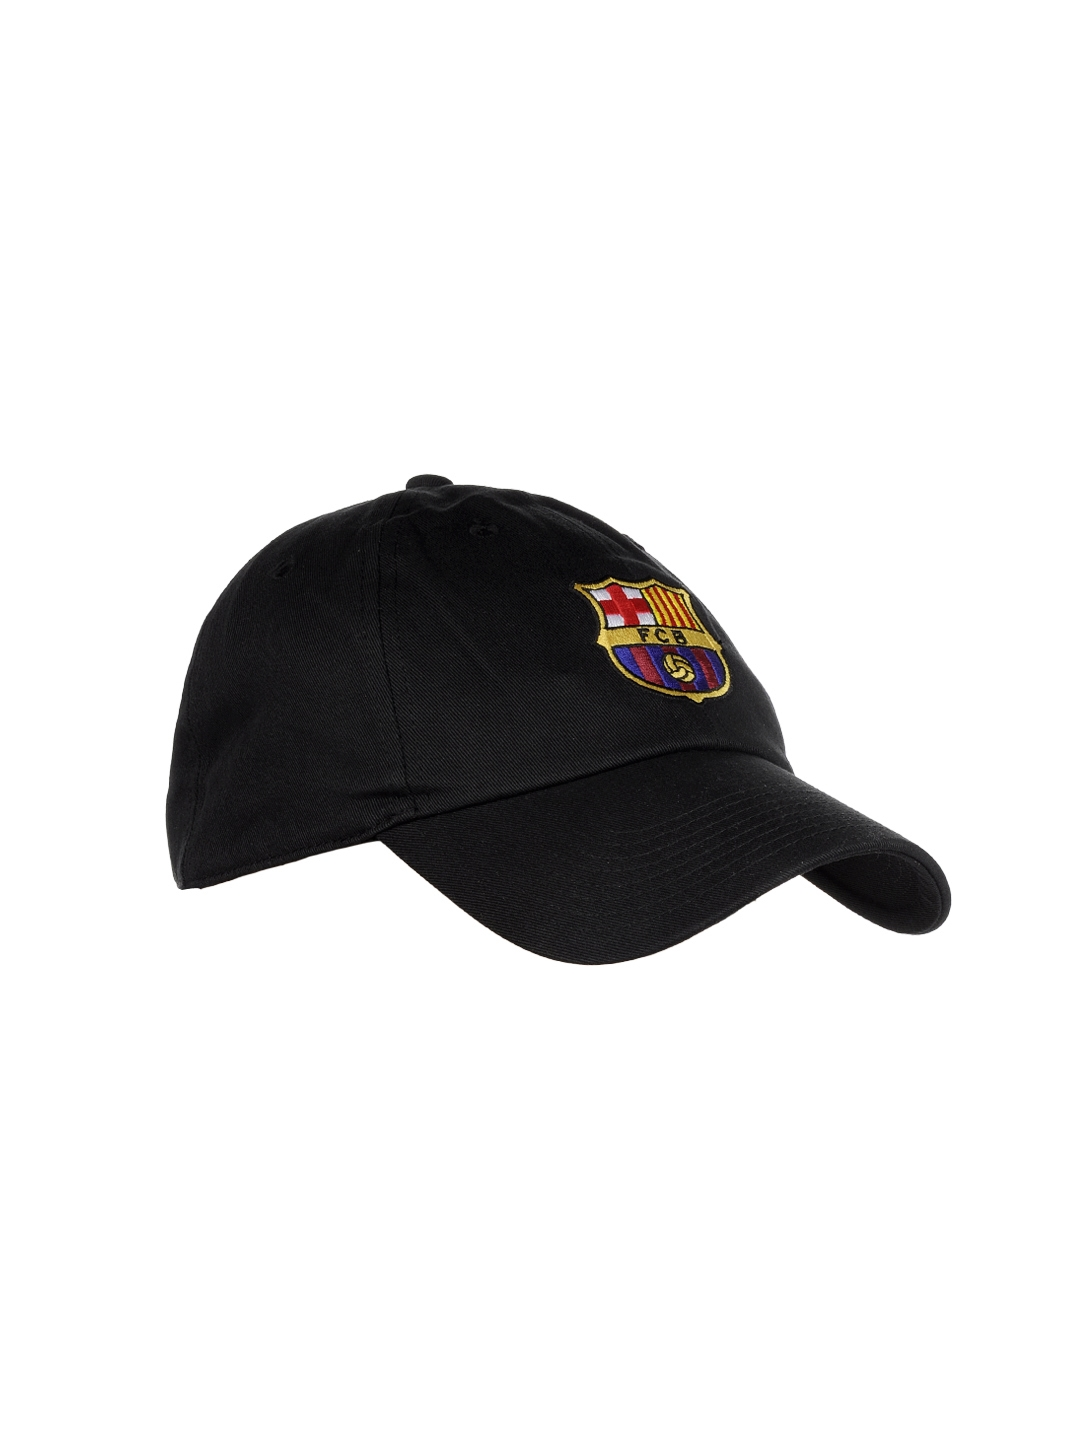 fbfa6c064ac3 Buy Nike Unisex Black FC Barcelona Cap - Caps for Unisex 122163